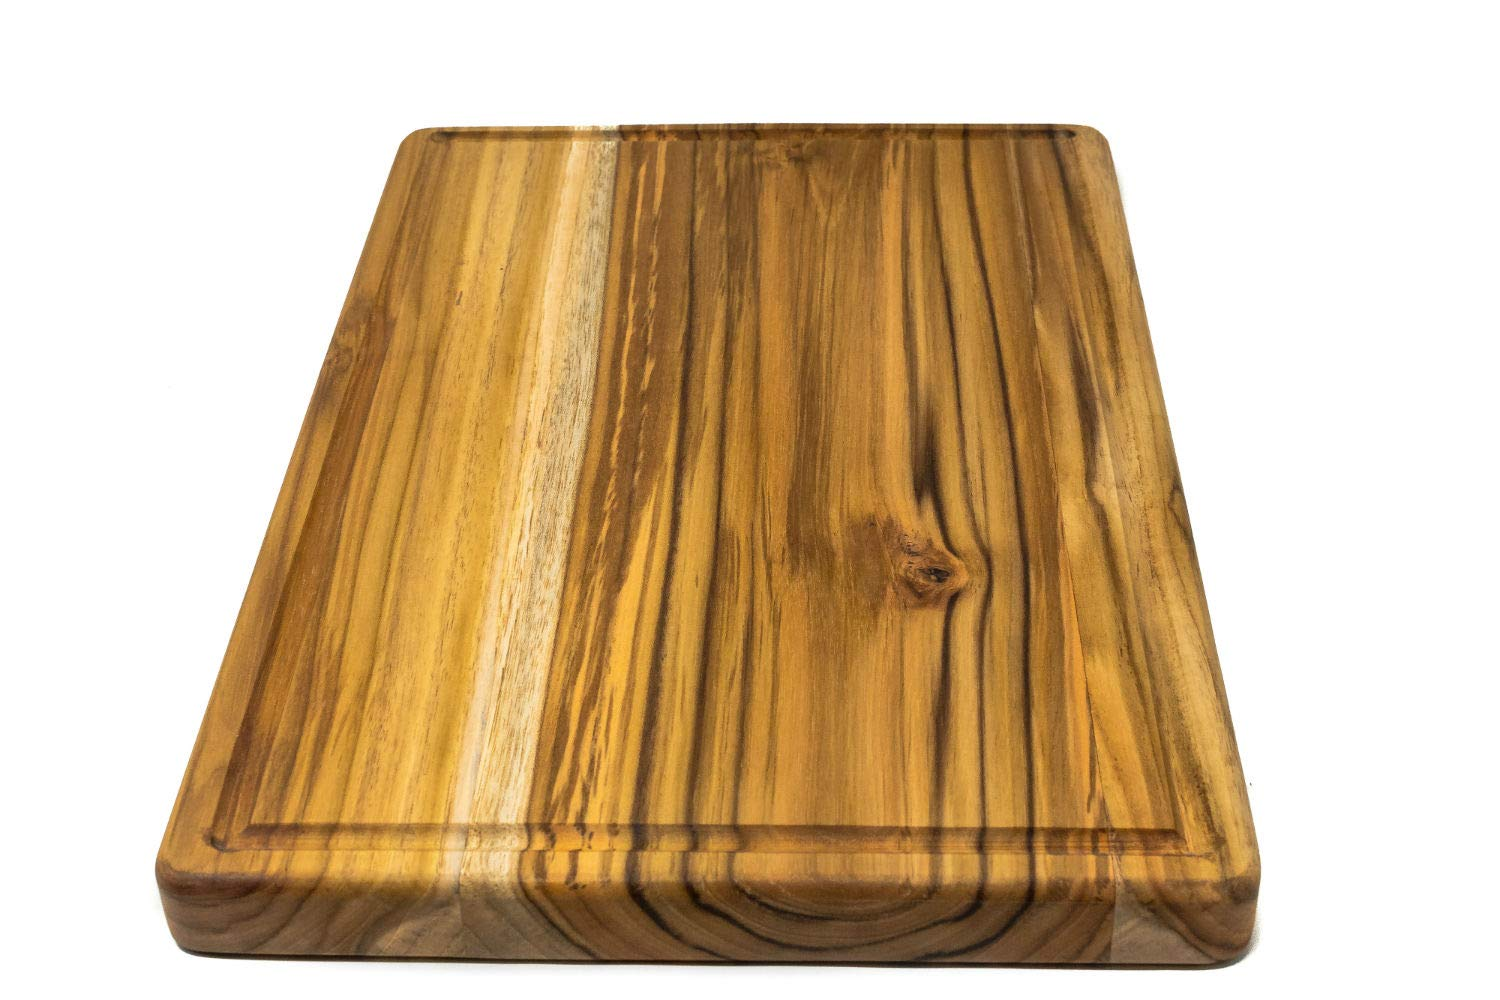 Large Reversible Teak Wood Cutting Board with Juice Groove - Hardwood Chopping Block and Serving Tray (17x11x1 Inches) by Do it wiser (Image #3)